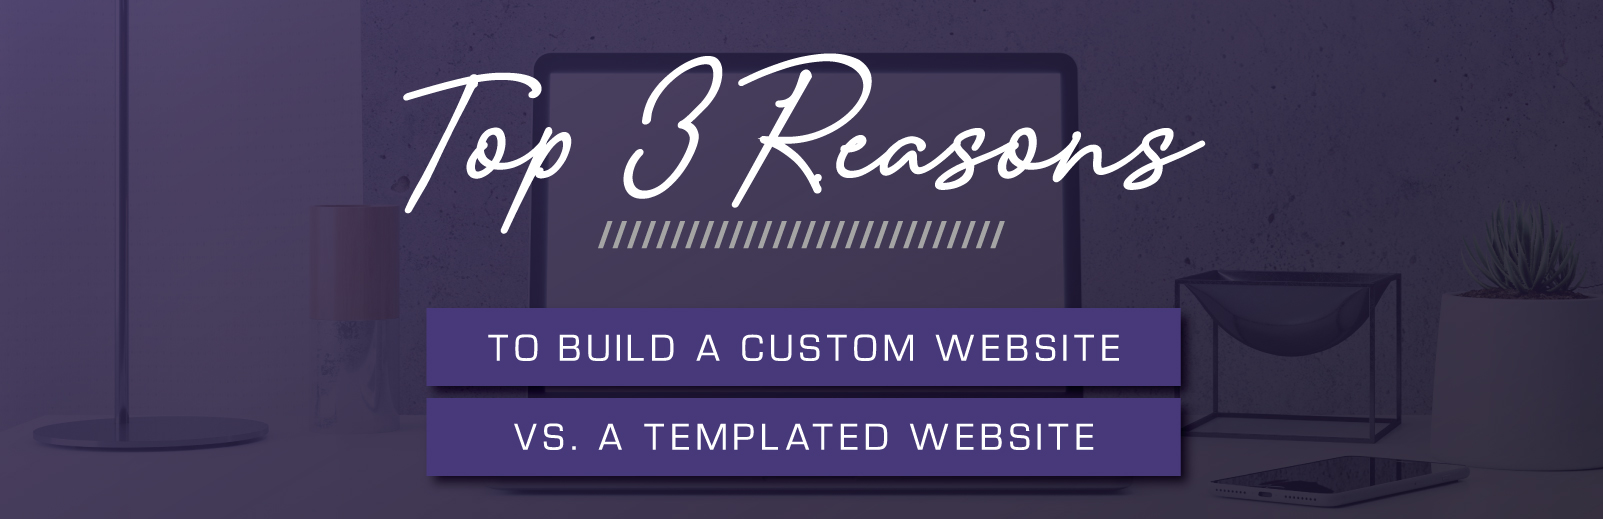 Top 3 Reasons to Build a Custom Website